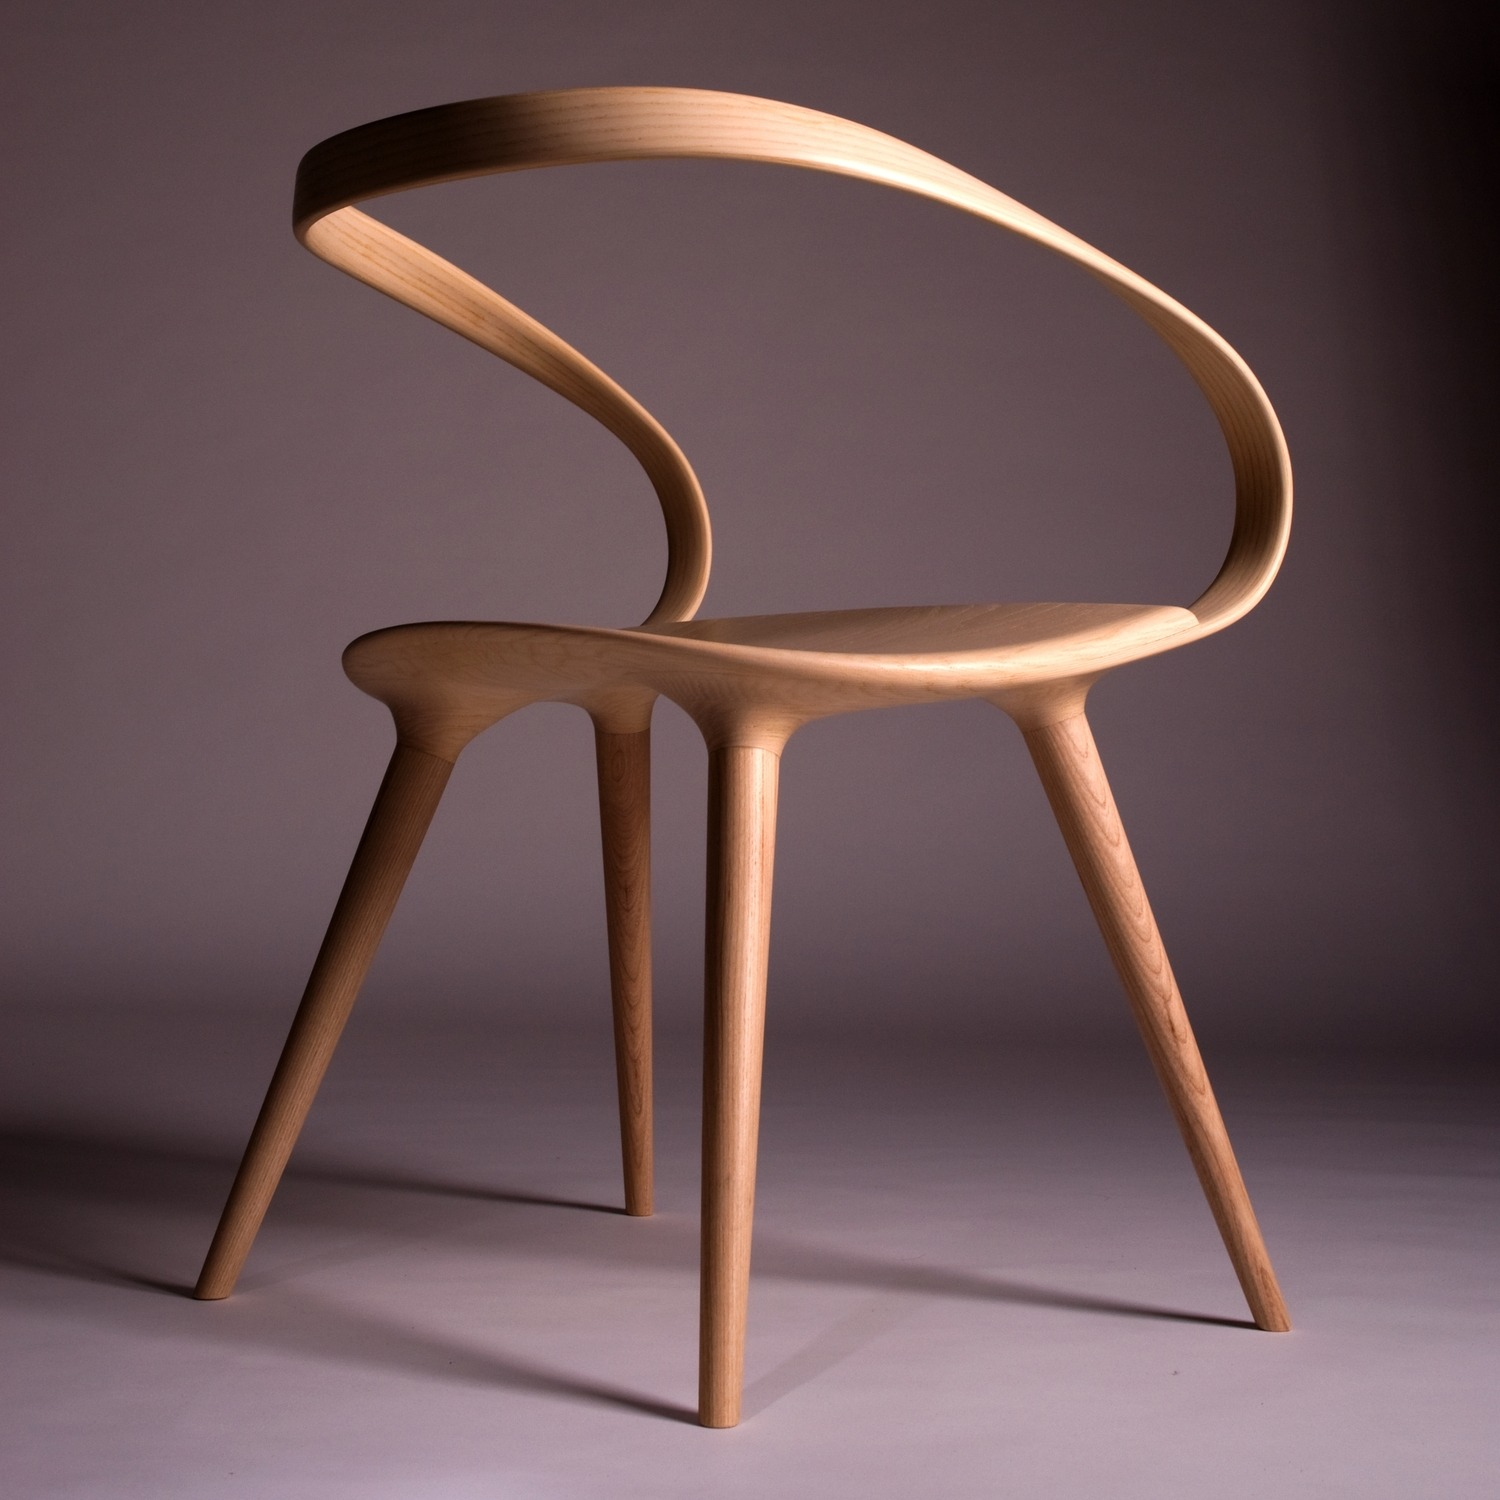 Designer Chair: This Insane Bent Plywood Chair Is Inspired By Modern